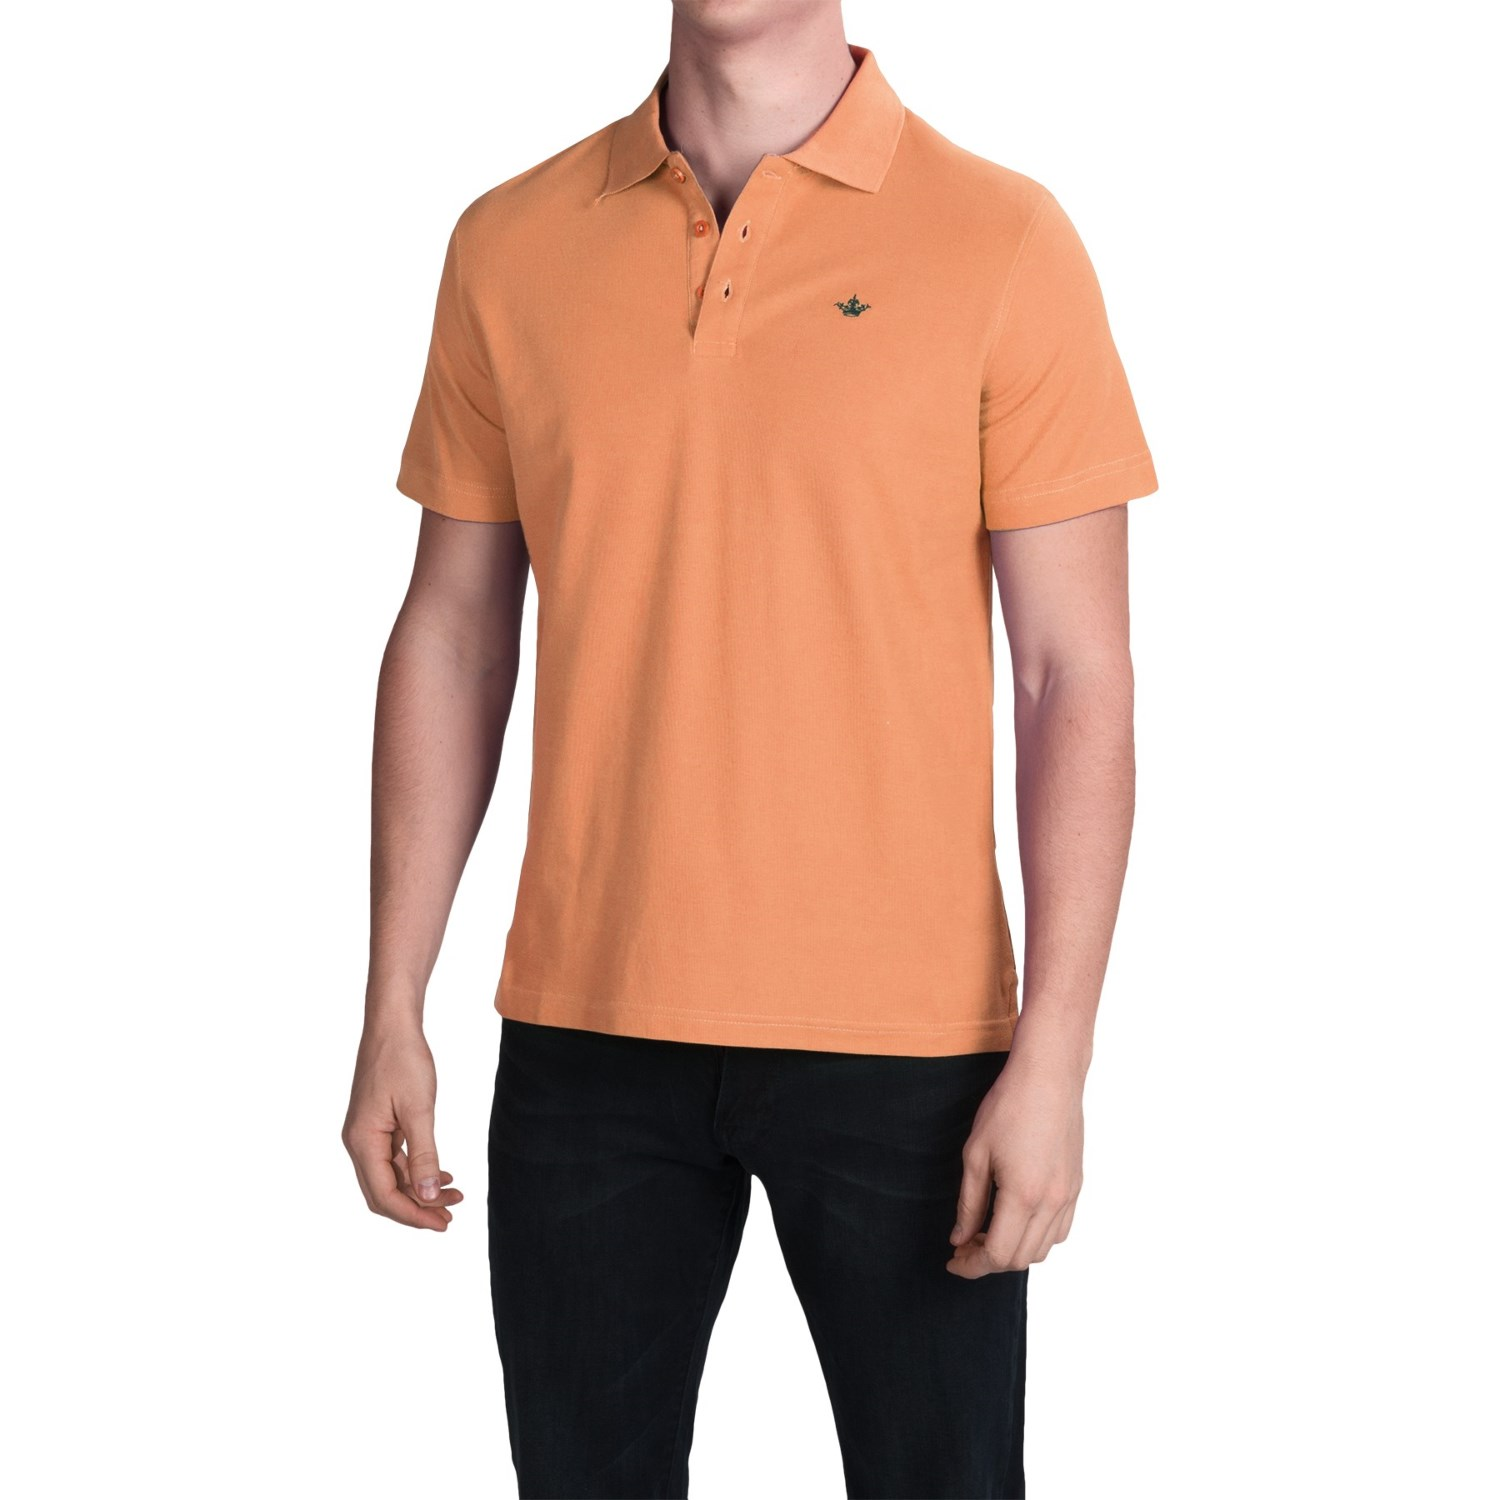 Vantage's premier cotton polo shirt is a great casual lifestyle apparel choice and looks great with with jeans, khakis or shorts.